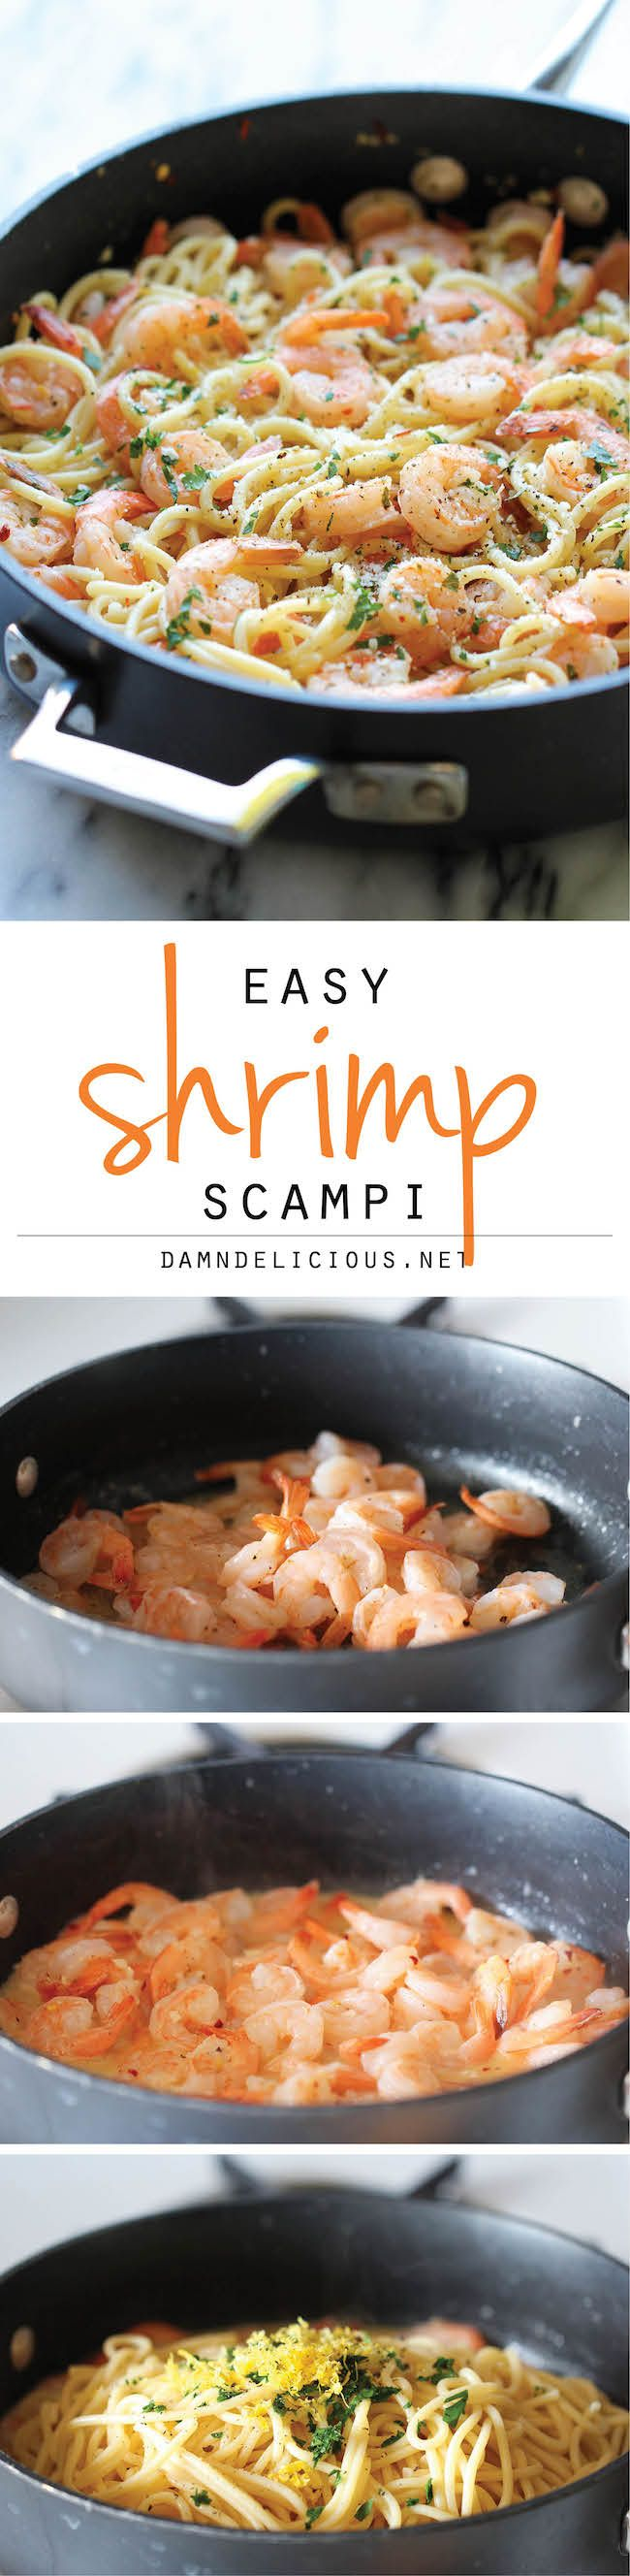 Shrimp Scampi - You wont believe how easy this comes together in just 15 minutes - perfect for those busy weeknights! #pasta #noodles #recipe #easy #recipes